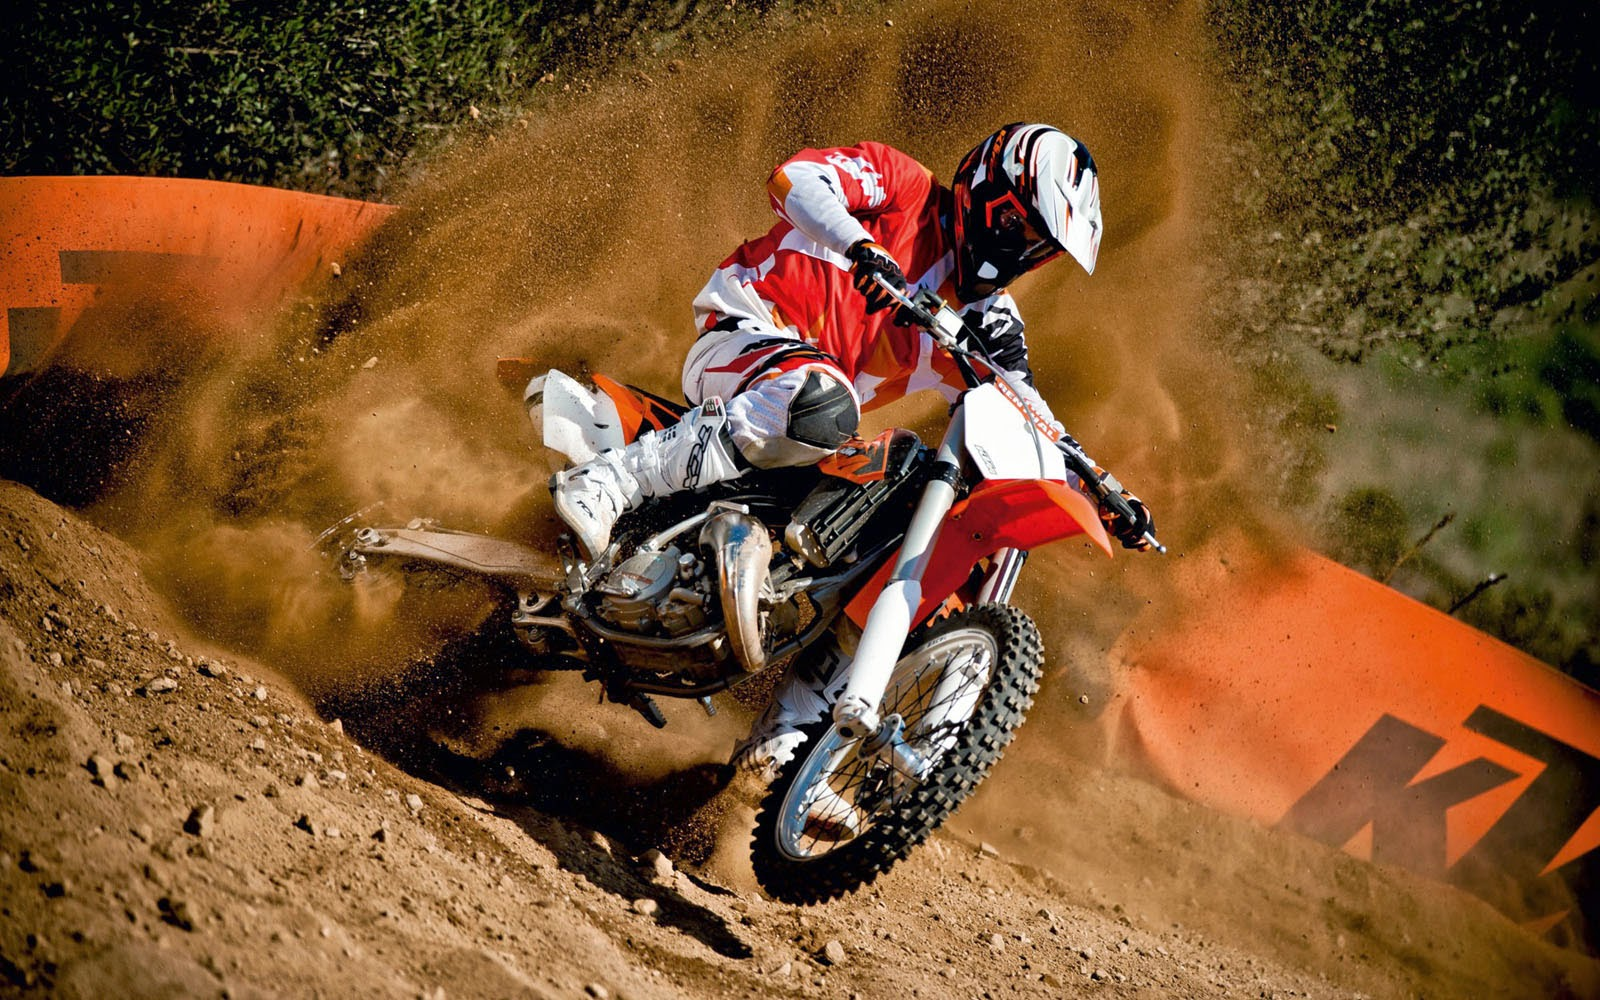 Polaris Outlaw 525 >> wallpapers: KTM 350 SX-F Wallpapers